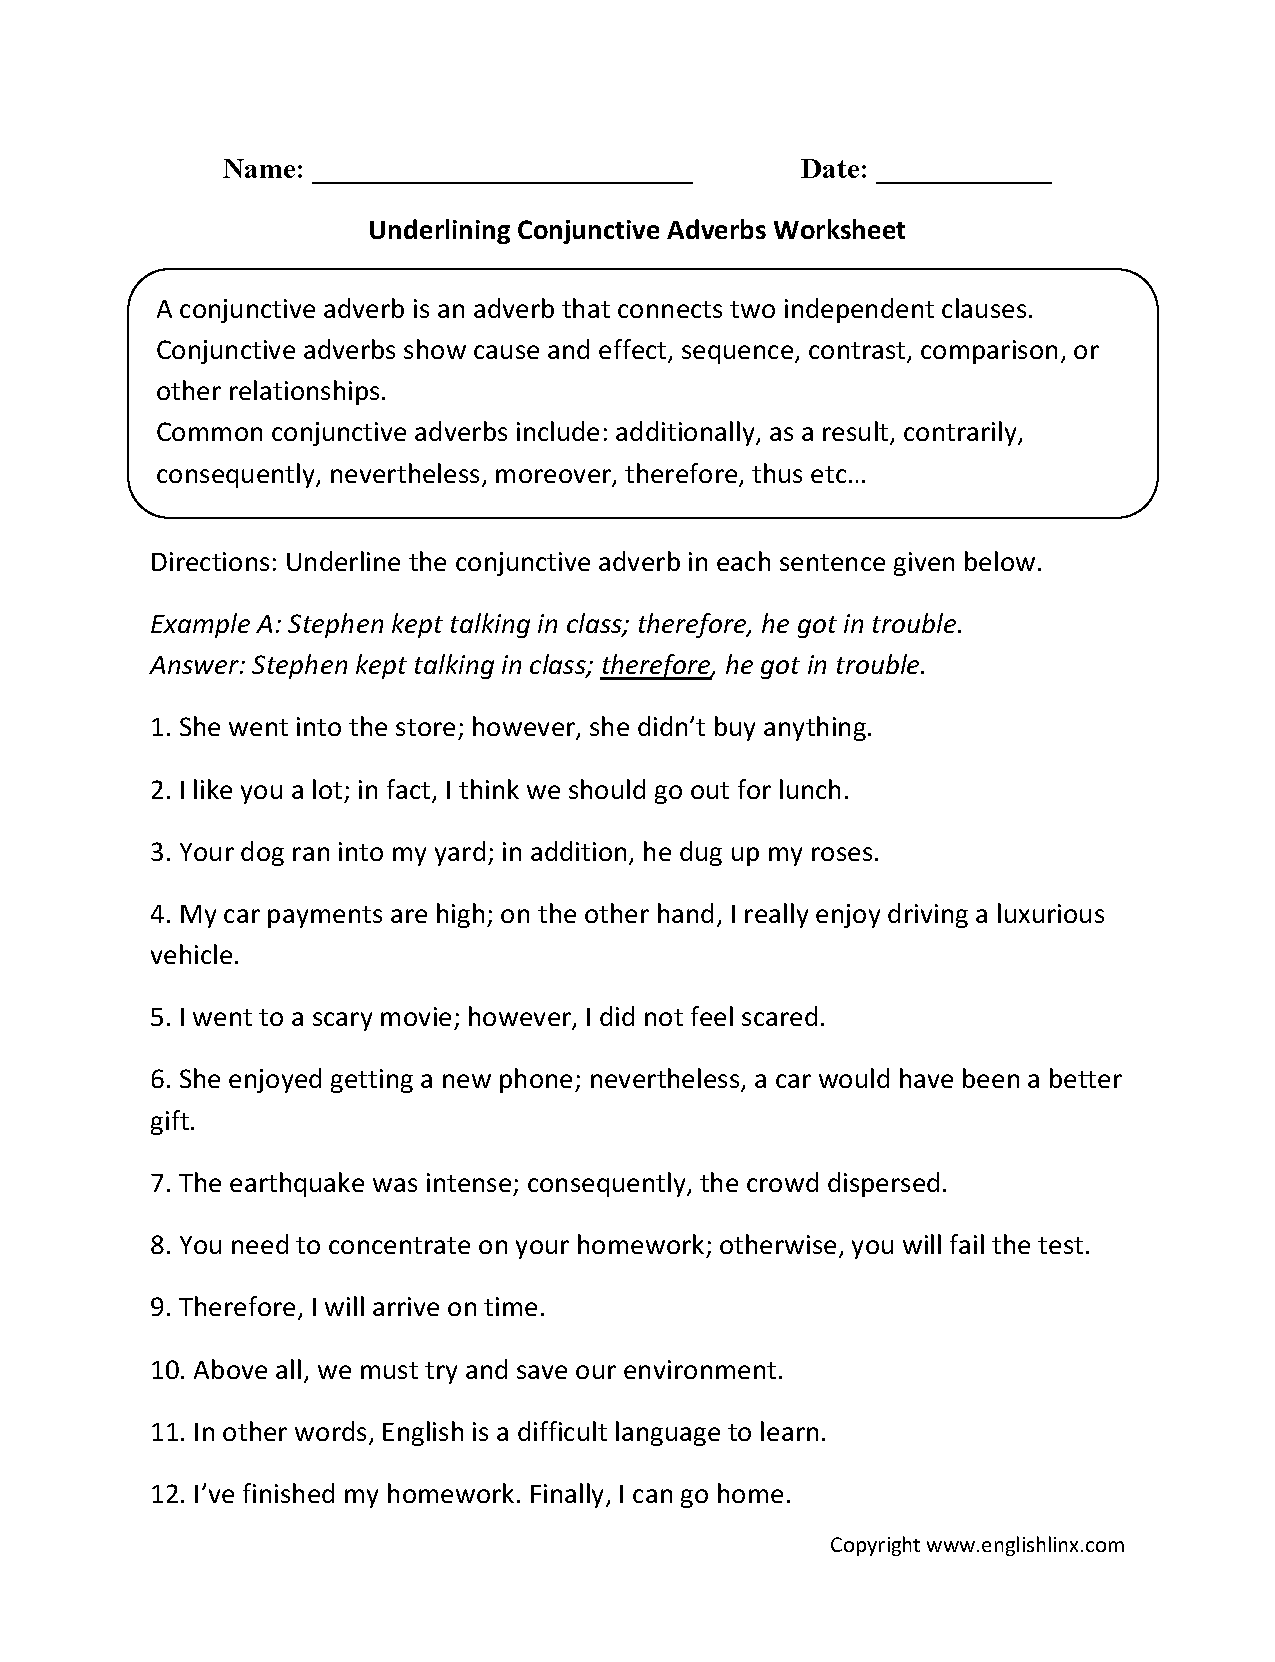 Weirdmailus  Unique Englishlinxcom  Conjunctions Worksheets With Interesting Worksheet With Archaic Propaganda Analysis Worksheet Also Simple Budget Worksheet Printable In Addition Act Grammar Worksheets And Free Measuring Worksheets As Well As Natural Disaster Worksheets Additionally Plural Possessive Noun Worksheets From Englishlinxcom With Weirdmailus  Interesting Englishlinxcom  Conjunctions Worksheets With Archaic Worksheet And Unique Propaganda Analysis Worksheet Also Simple Budget Worksheet Printable In Addition Act Grammar Worksheets From Englishlinxcom